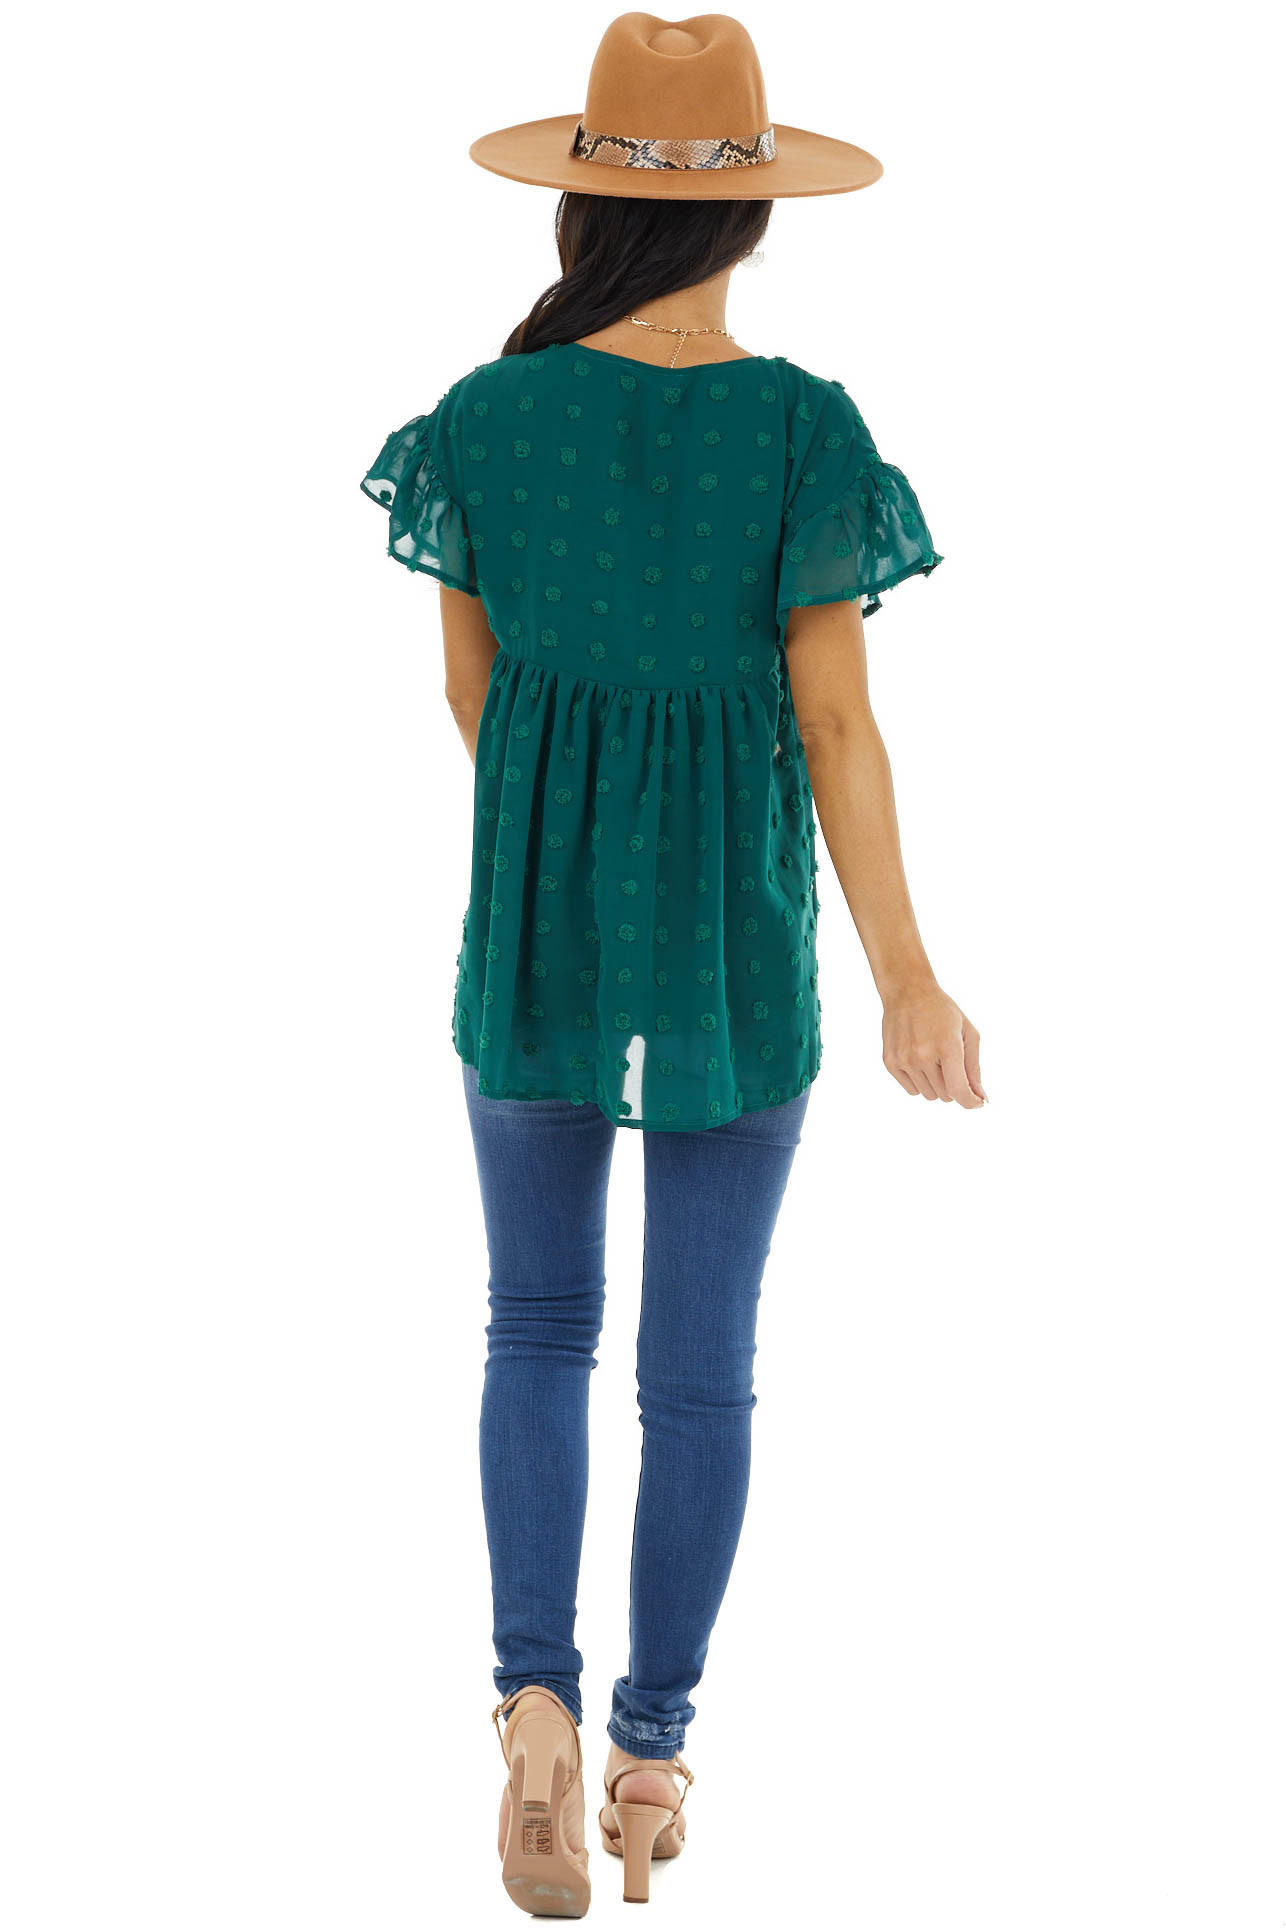 Forest Large Swiss Dot Babydoll Woven Top with Short Sleeves